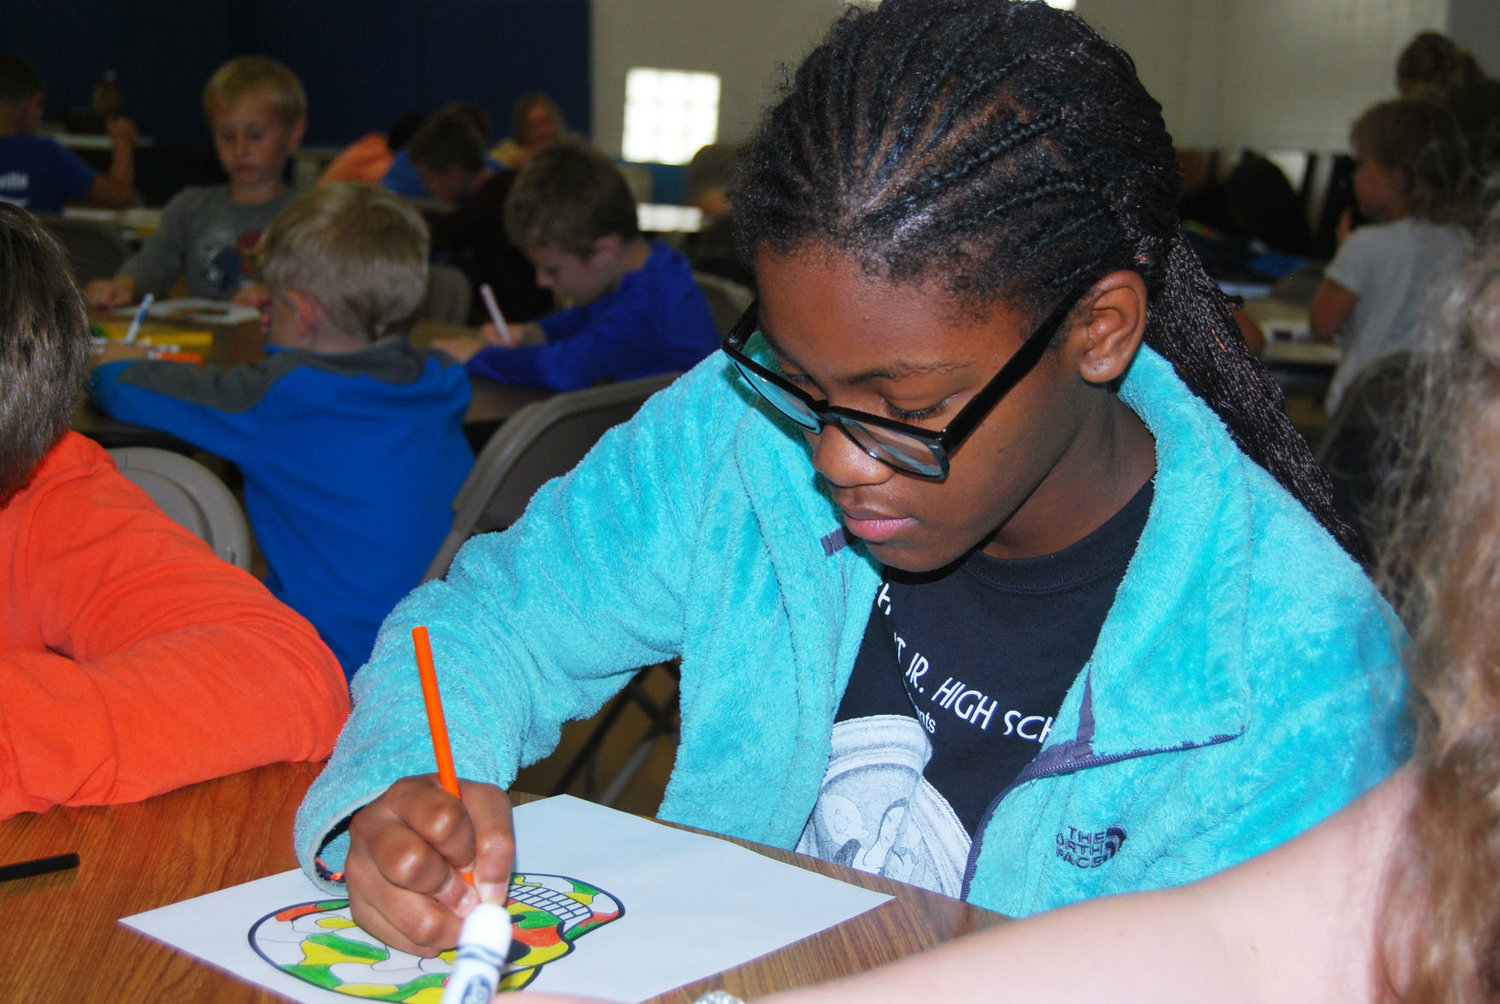 Shaahia Burks, 14, colors a picture Monday at the Boys & Girls Club of Montgomery County. Themed events for the camp include S.T.E.M., a picnic, Kid Olympics and a costume party.